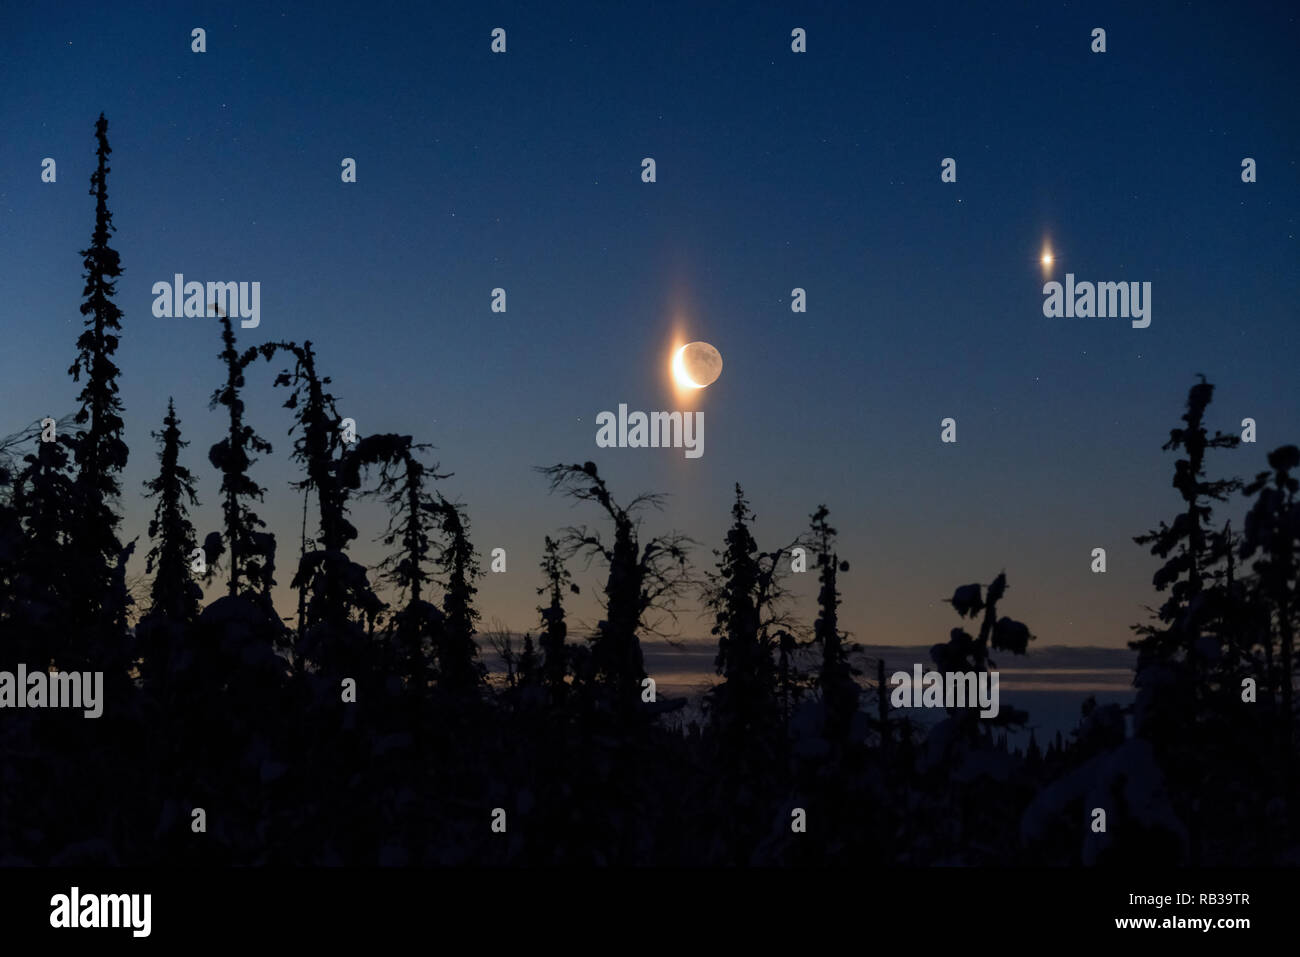 Venus and cressent moon seen in Lapland, Finland, Europe - Stock Image